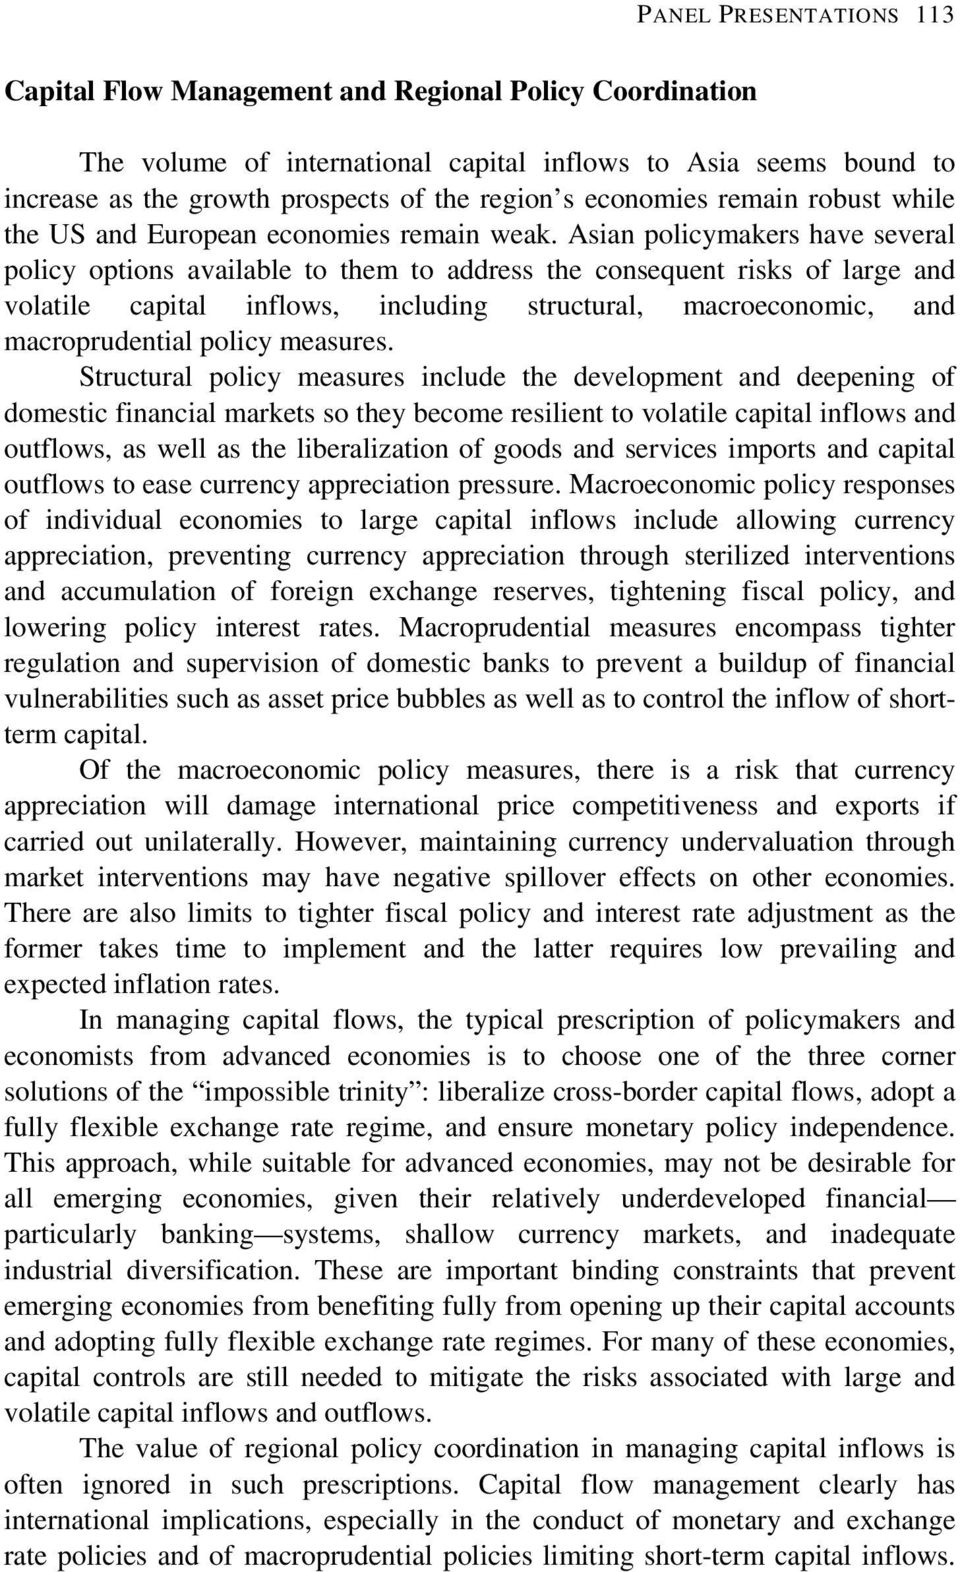 Asian policymakers have several policy options available to them to address the consequent risks of large and volatile capital inflows, including structural, macroeconomic, and macroprudential policy